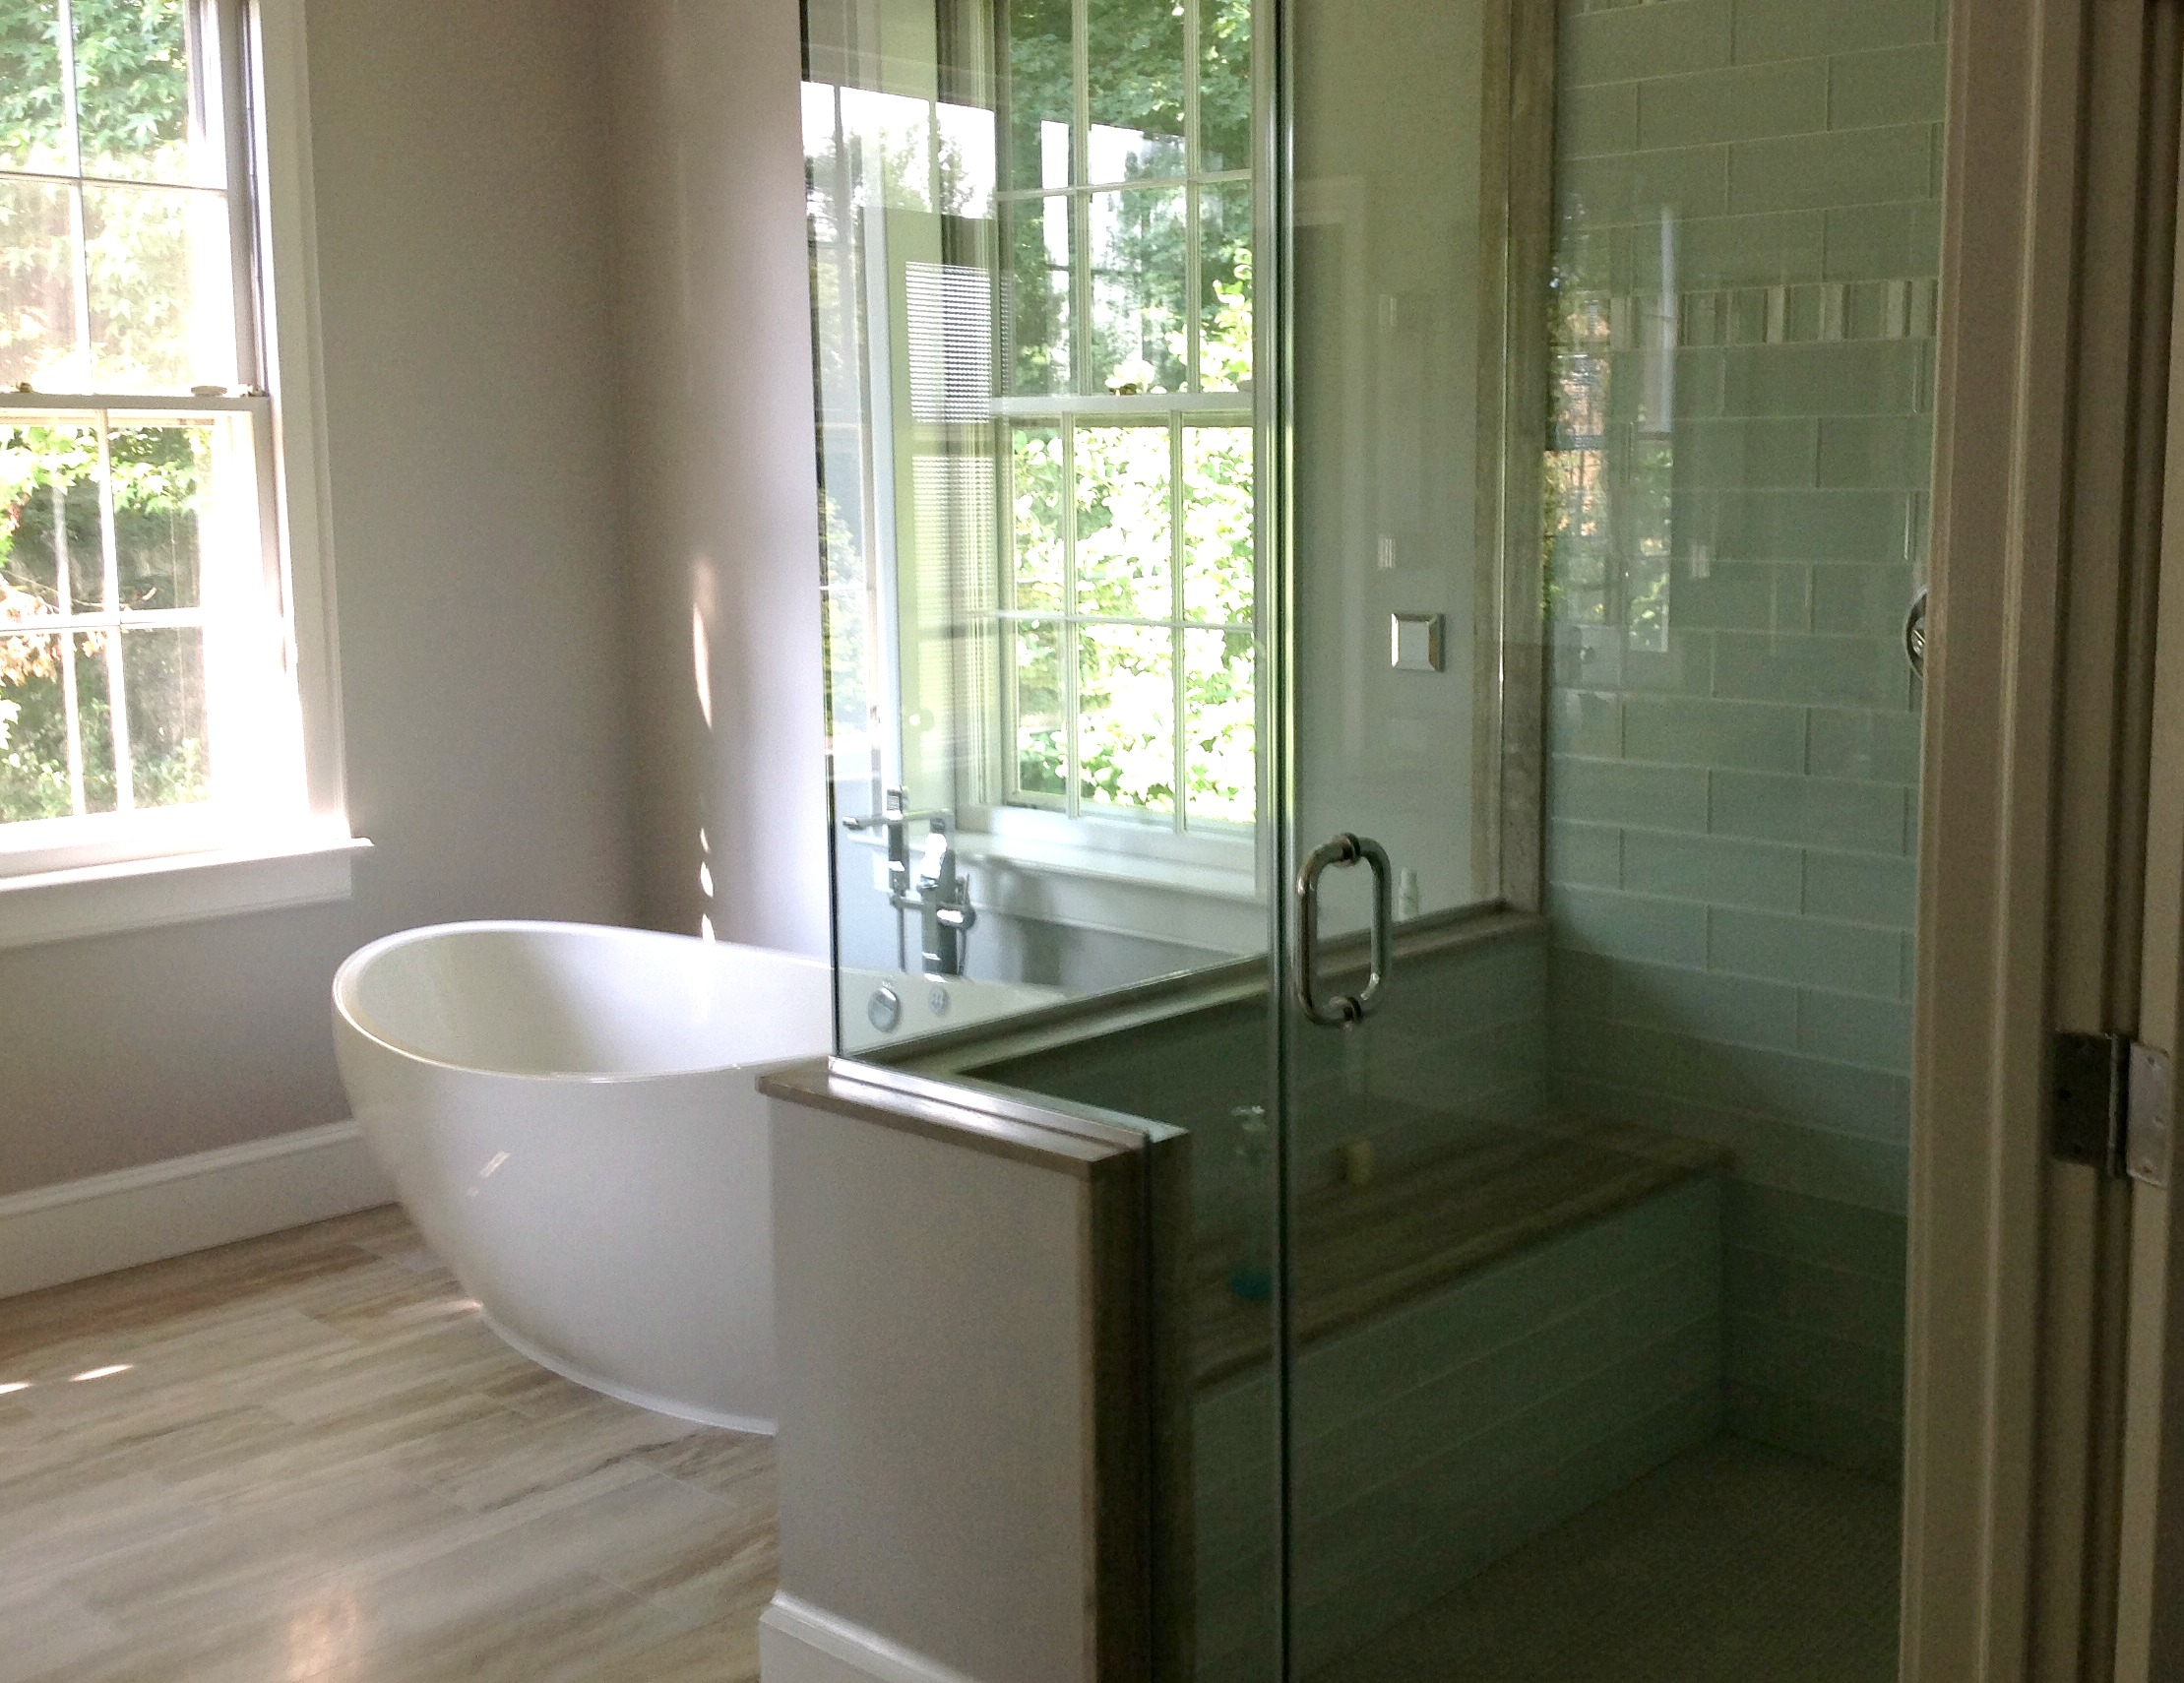 Cute Calming Bathroom Paint Colors Tall Tile Backsplash In Bathroom Pictures Shaped Master Bath Remodel Plans Shabby Chic Bath Shelves Youthful Hampton Bay Bath Lighting Fixtures BrownHome Depot Bathroom Images Tile Company